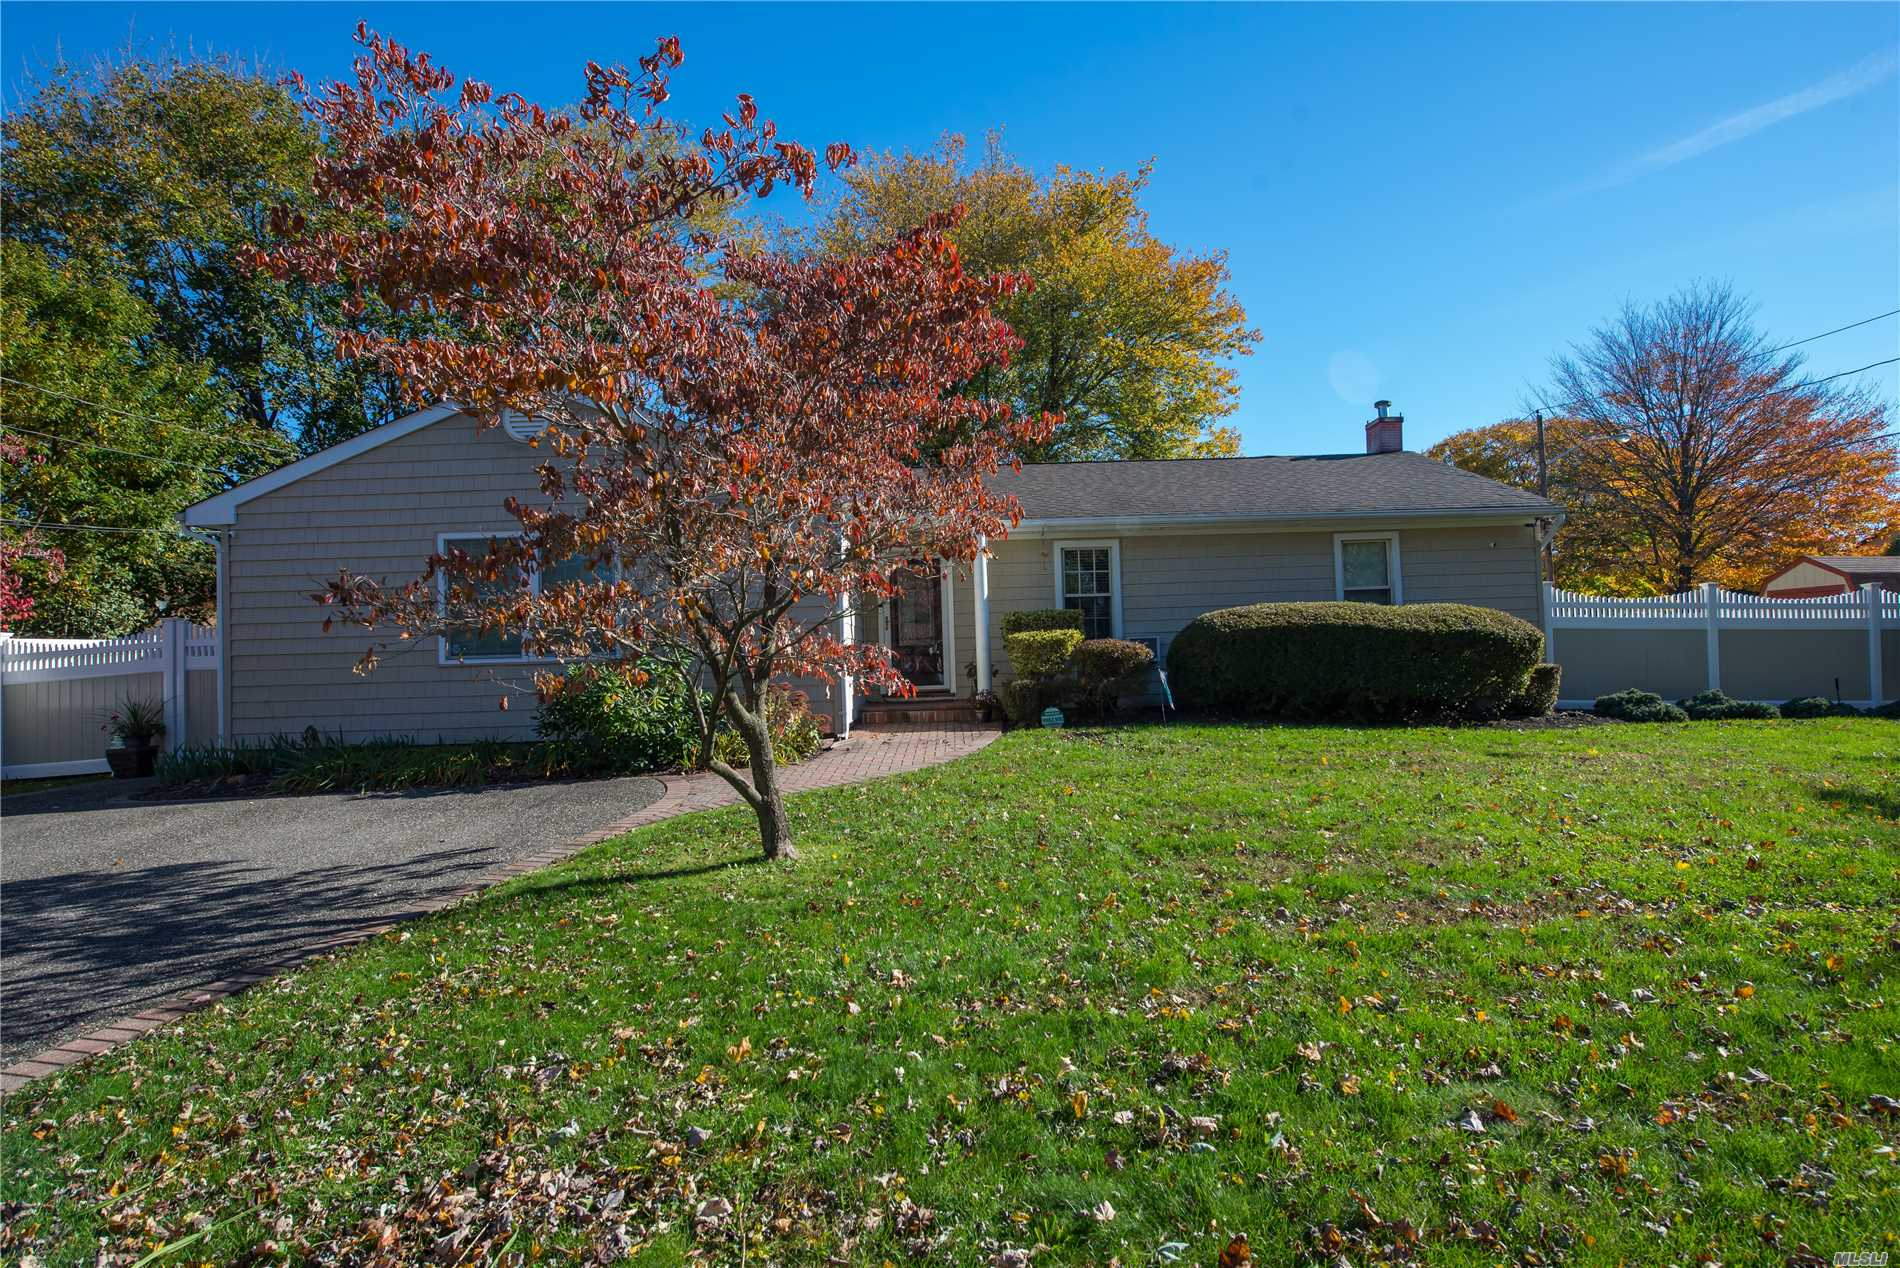 Well Maintained Home With Many Updates. Brazil Cherry Wood Floors Newly Porcelain Tiled Kitchen Floors In Kitchen Dining Area & Living Room. Stove Fridgemicrowave Washer & Dryer About A Year Old. New Luxury Flooring In The Basement Vinyl Fencing Under 2 Years Old Good Size Bedrooms Updated Baths Some Crown Moldings Newer French Door With Built In Blinds Many New Windows Master Suite Has A Huge Walk In Closet With Private Bath With Huge Tub. Too Much To List Come Check It Out!